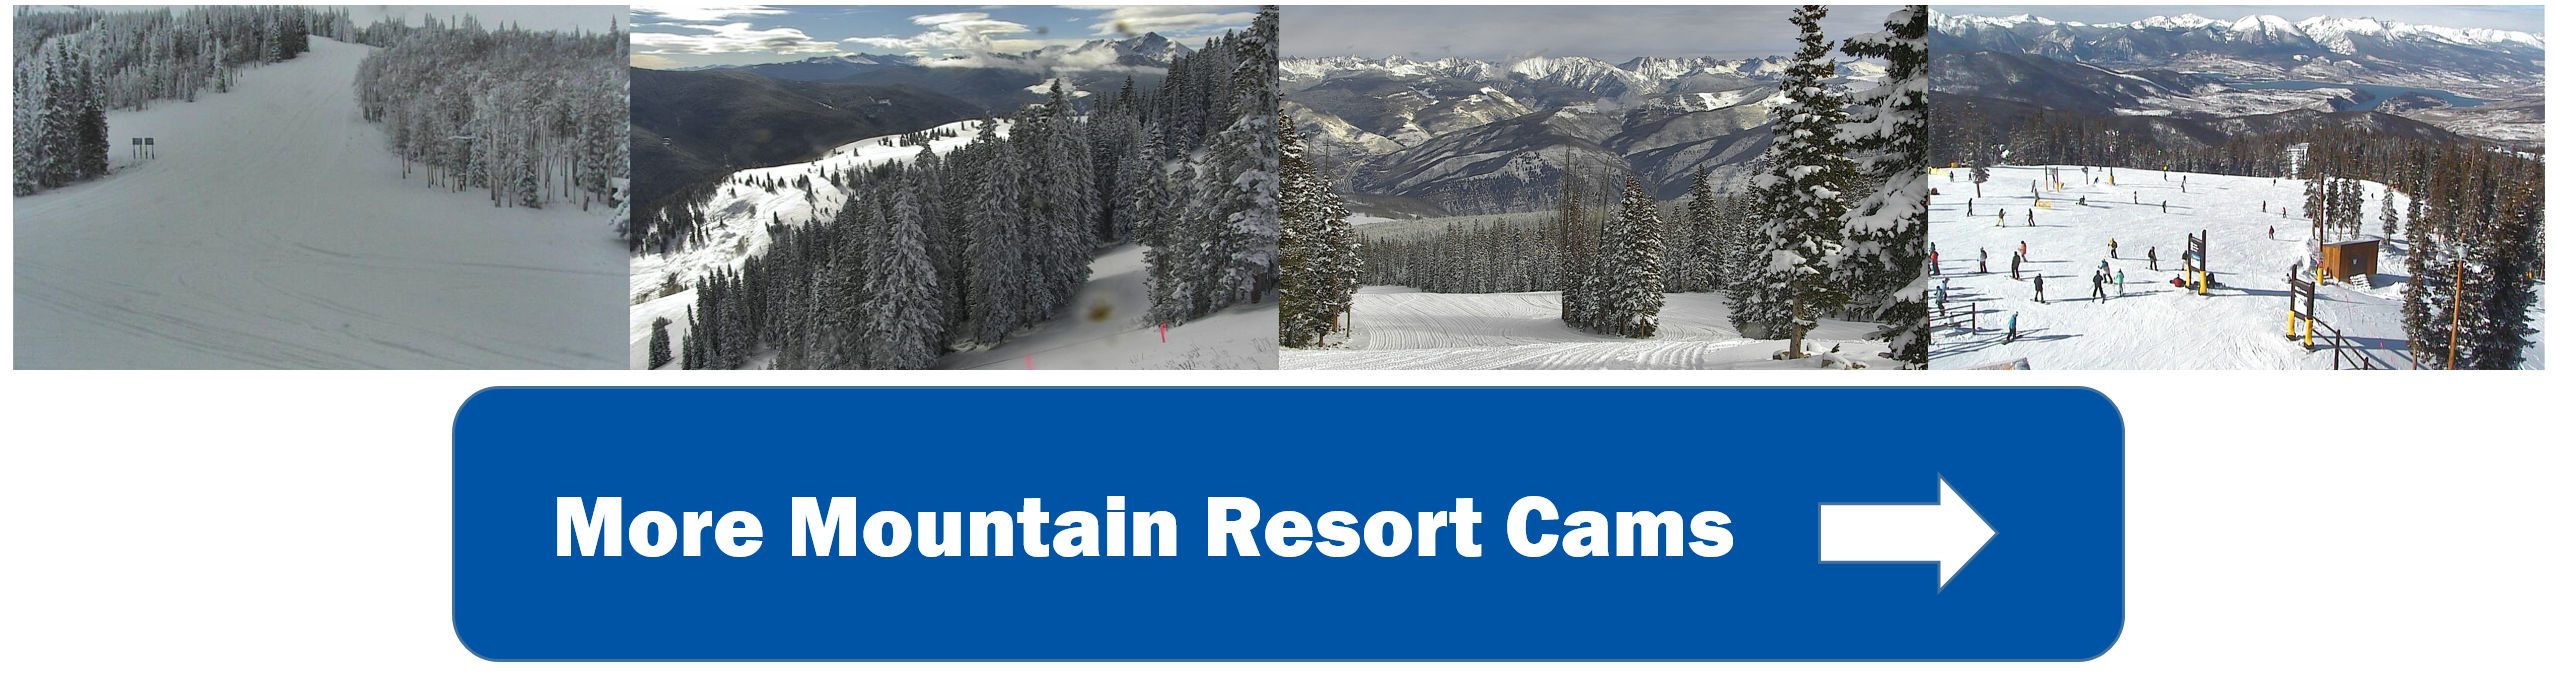 For more live webcams from all your favorite ski resorts, head over to our PowderCAST Homepage.